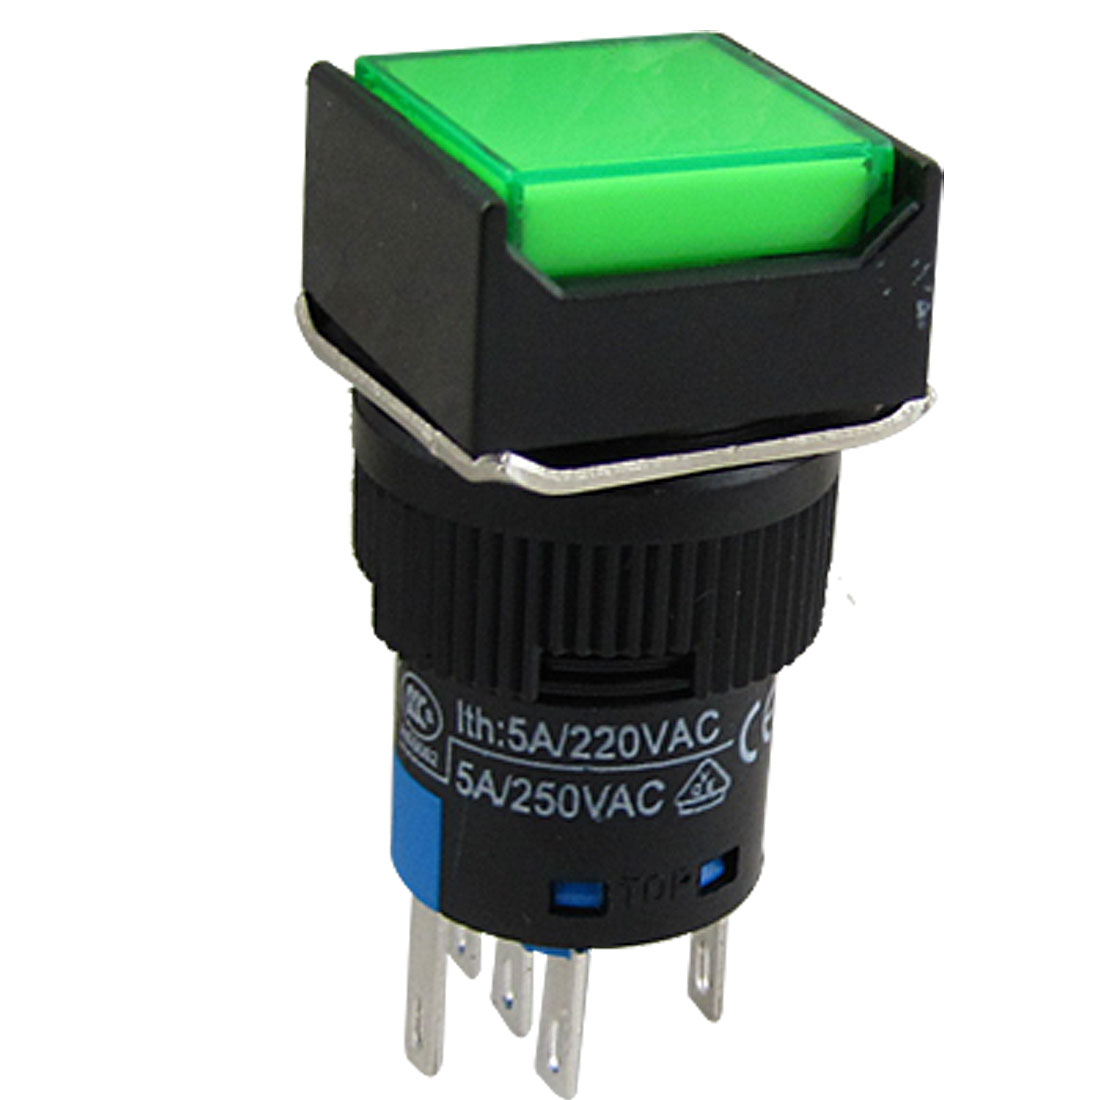 Square Green Plastic Push Button Momentary Contact Switch AC 250V